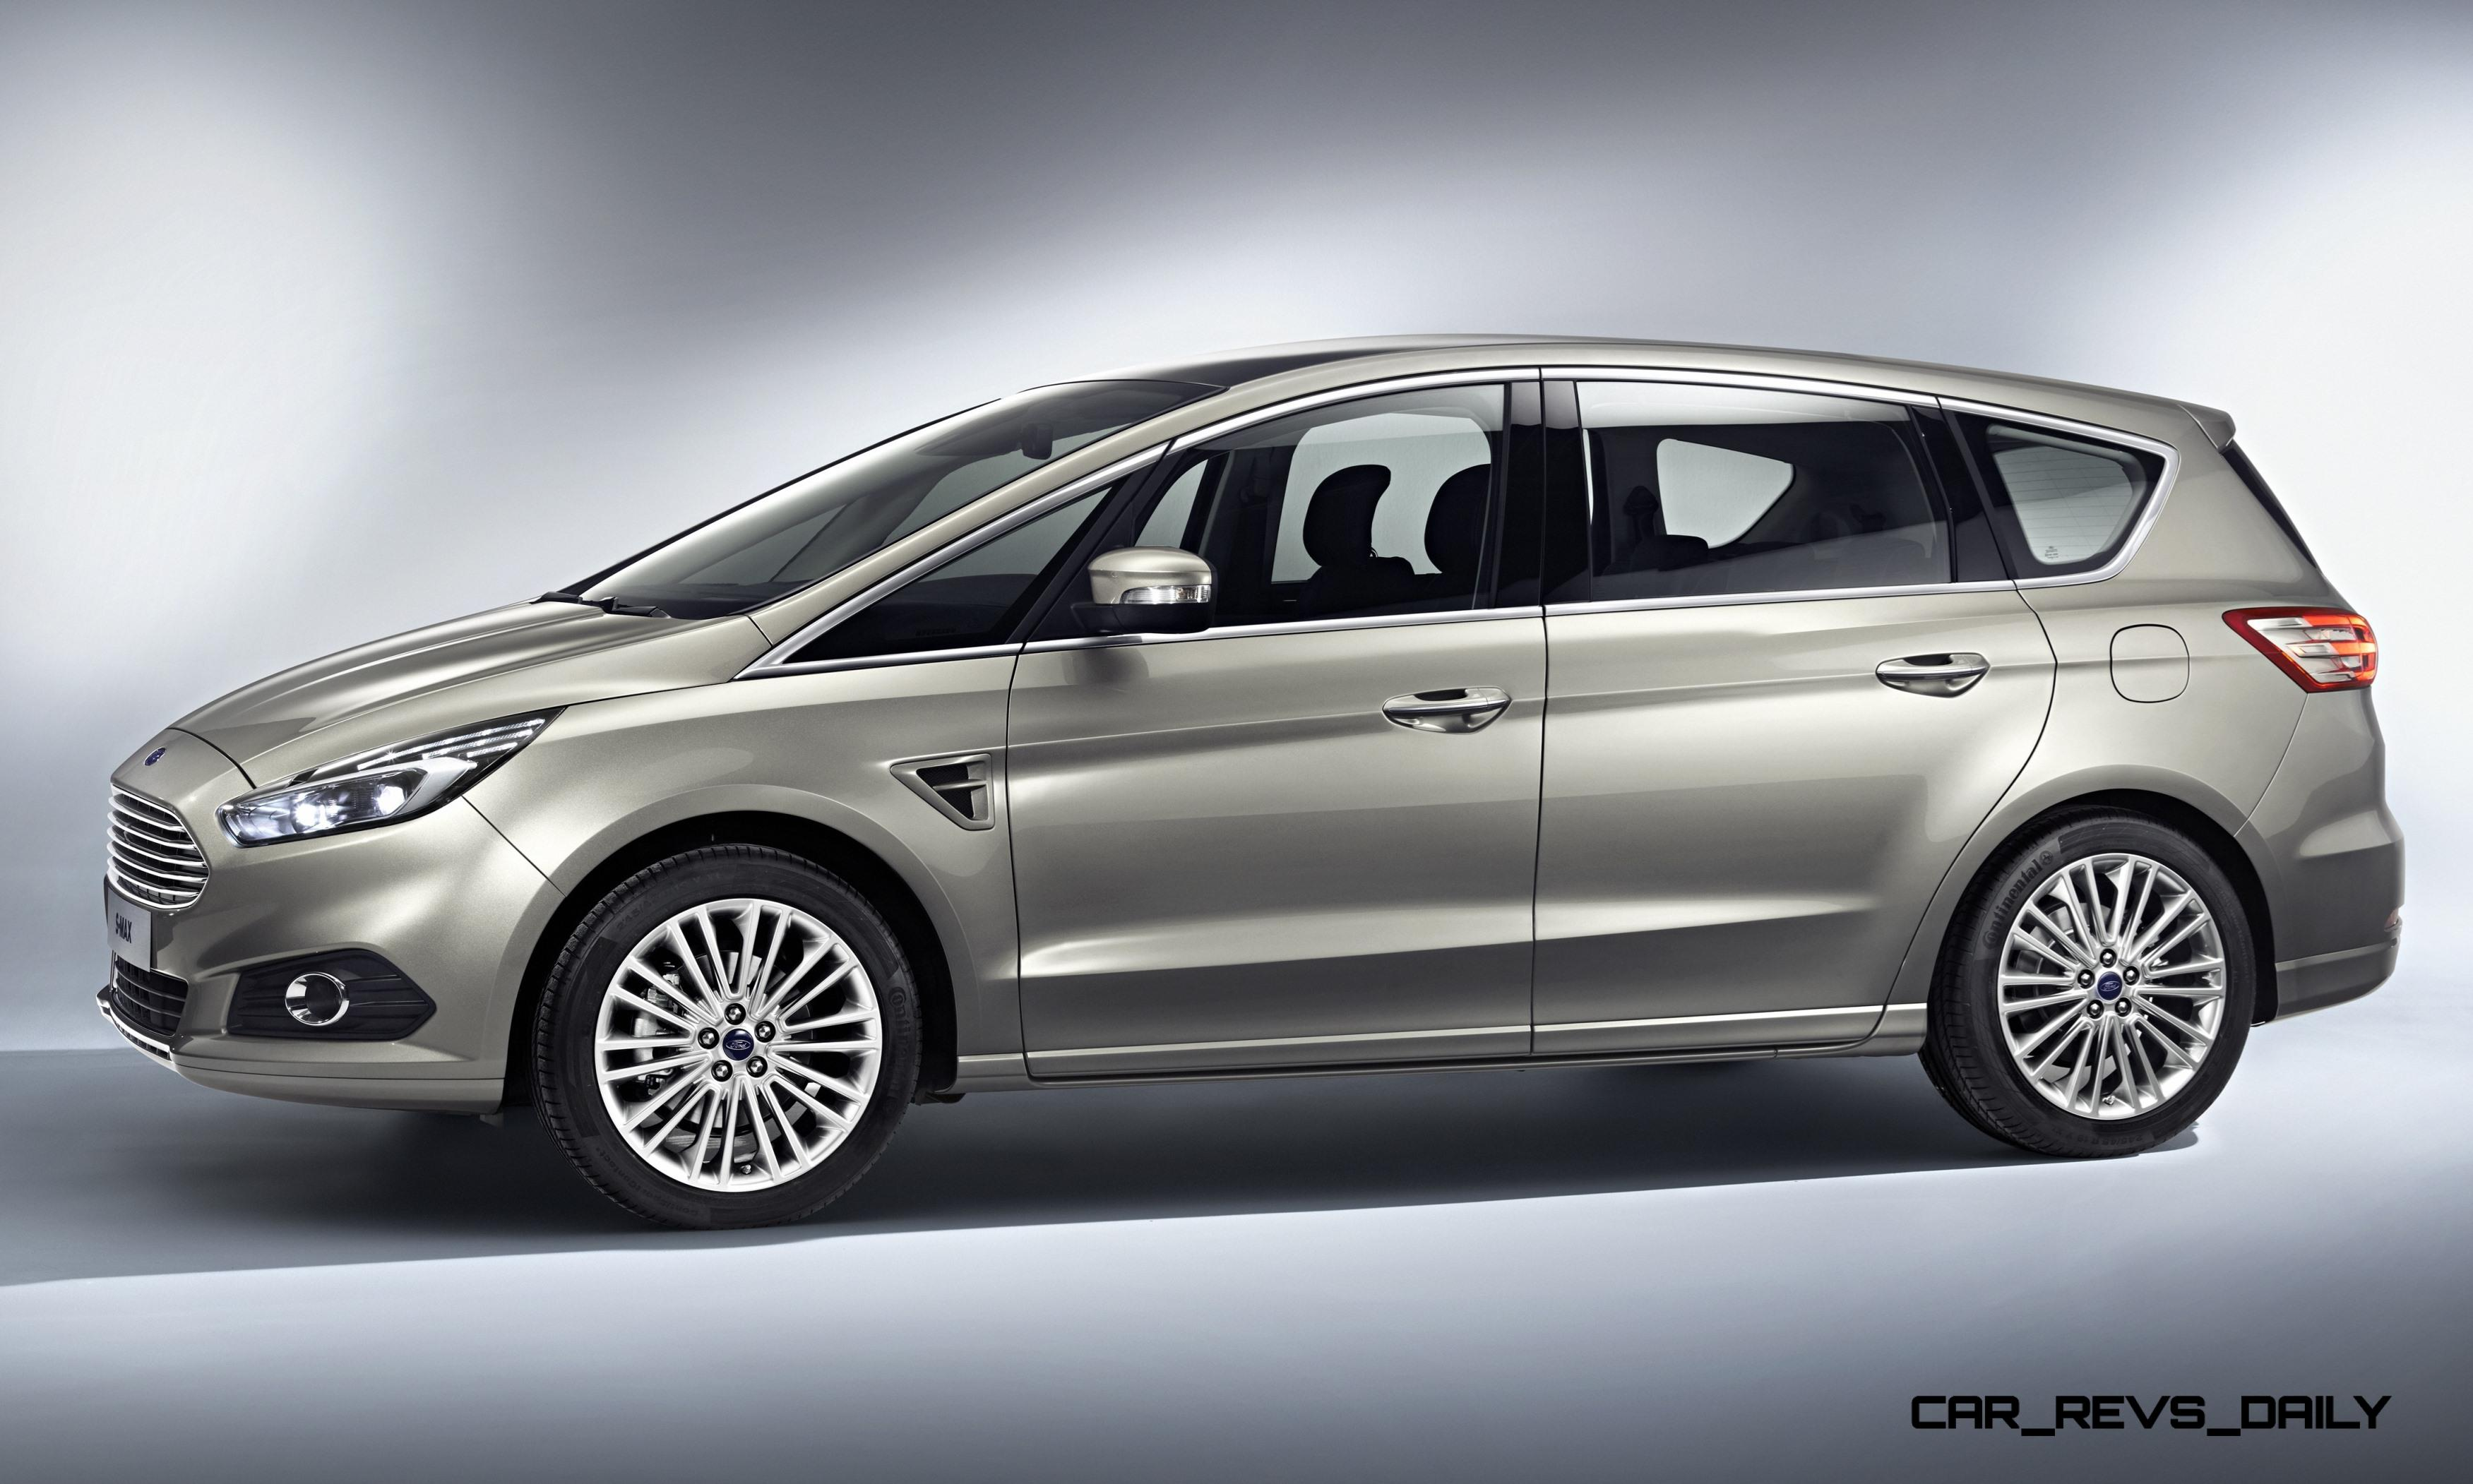 2015 ford s max van adds led lighting and next gen sync in. Black Bedroom Furniture Sets. Home Design Ideas